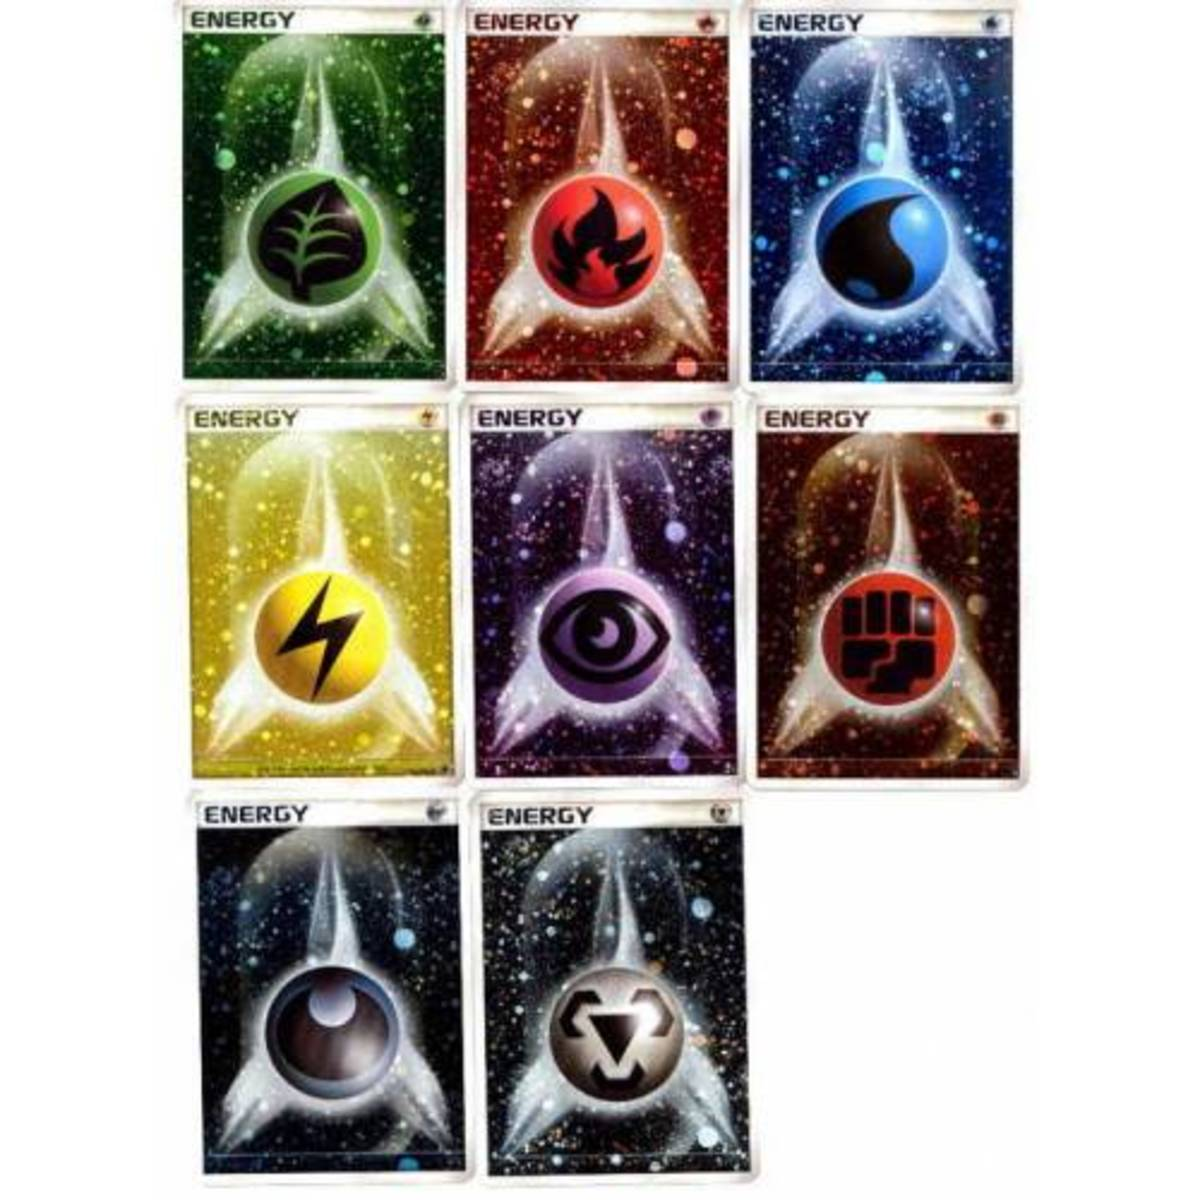 The basic energies in Pokémon, from top to bottom, left to right: grass, fire, water, lightning, psychic, fighting, darkness, and metal. Colorless (represented by a six-pointed star) and fairy (a pink butterfly) are not shown.